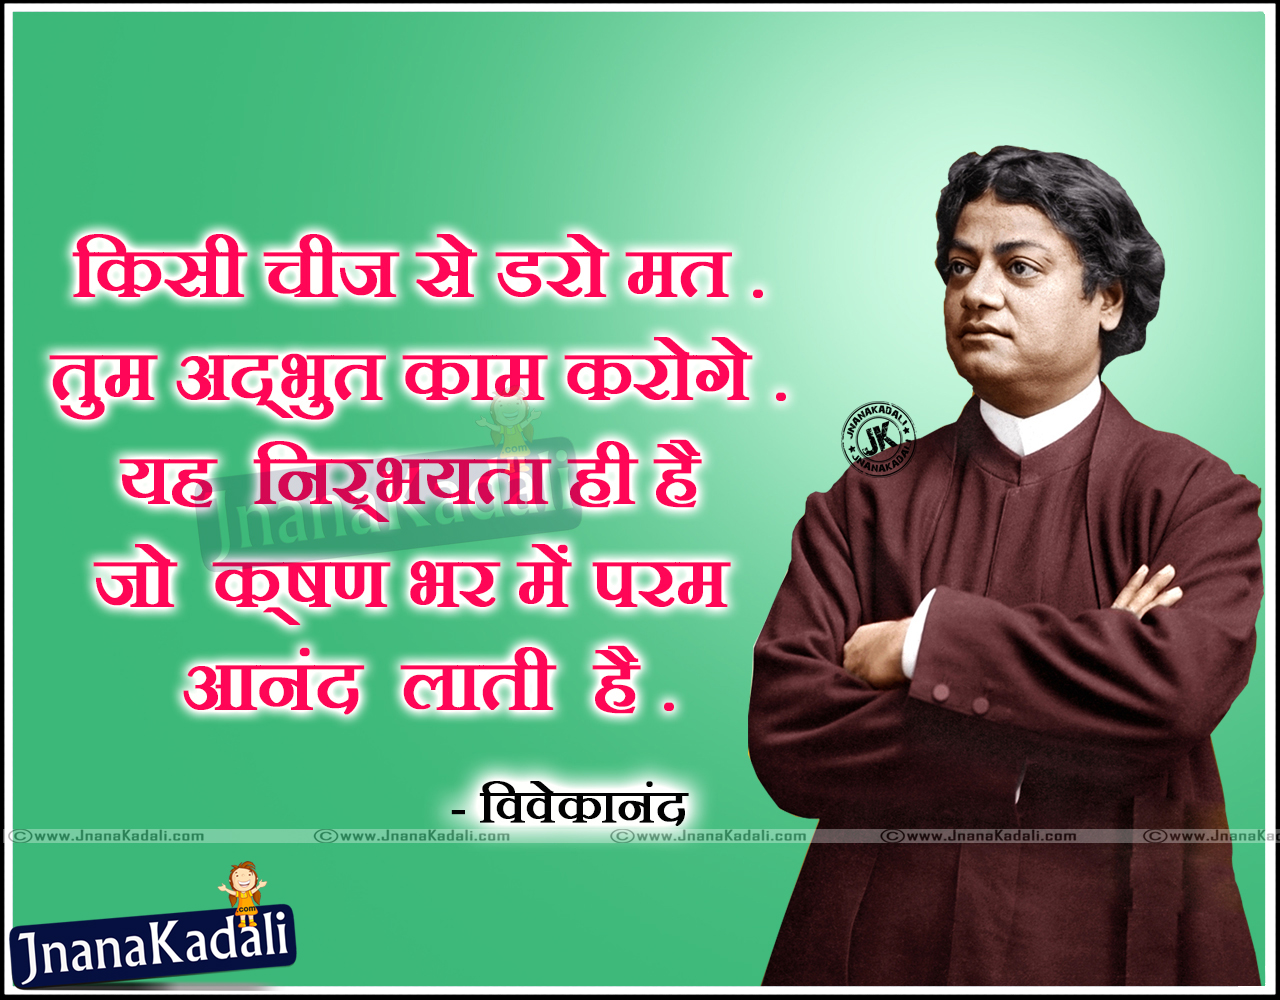 Swami Vivekananda Quotes In Malayalam Wallpapers Awesome Swami